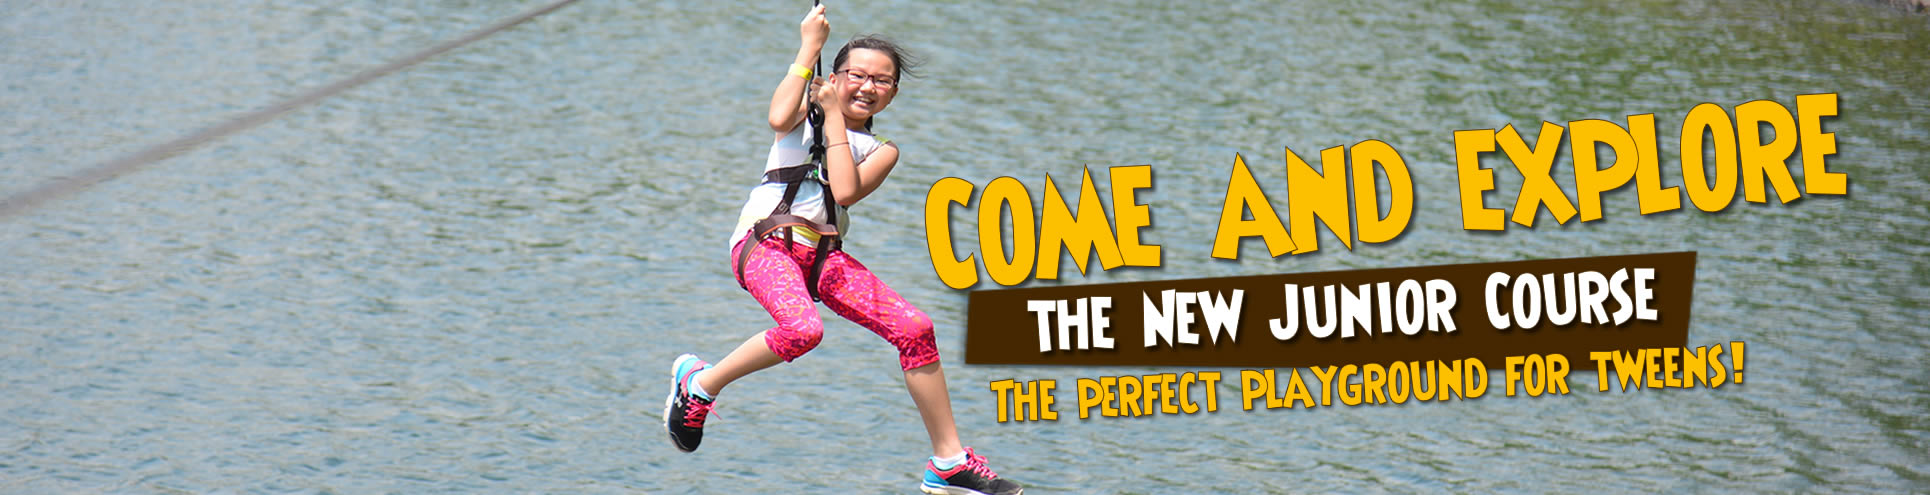 come and explore the new junior course